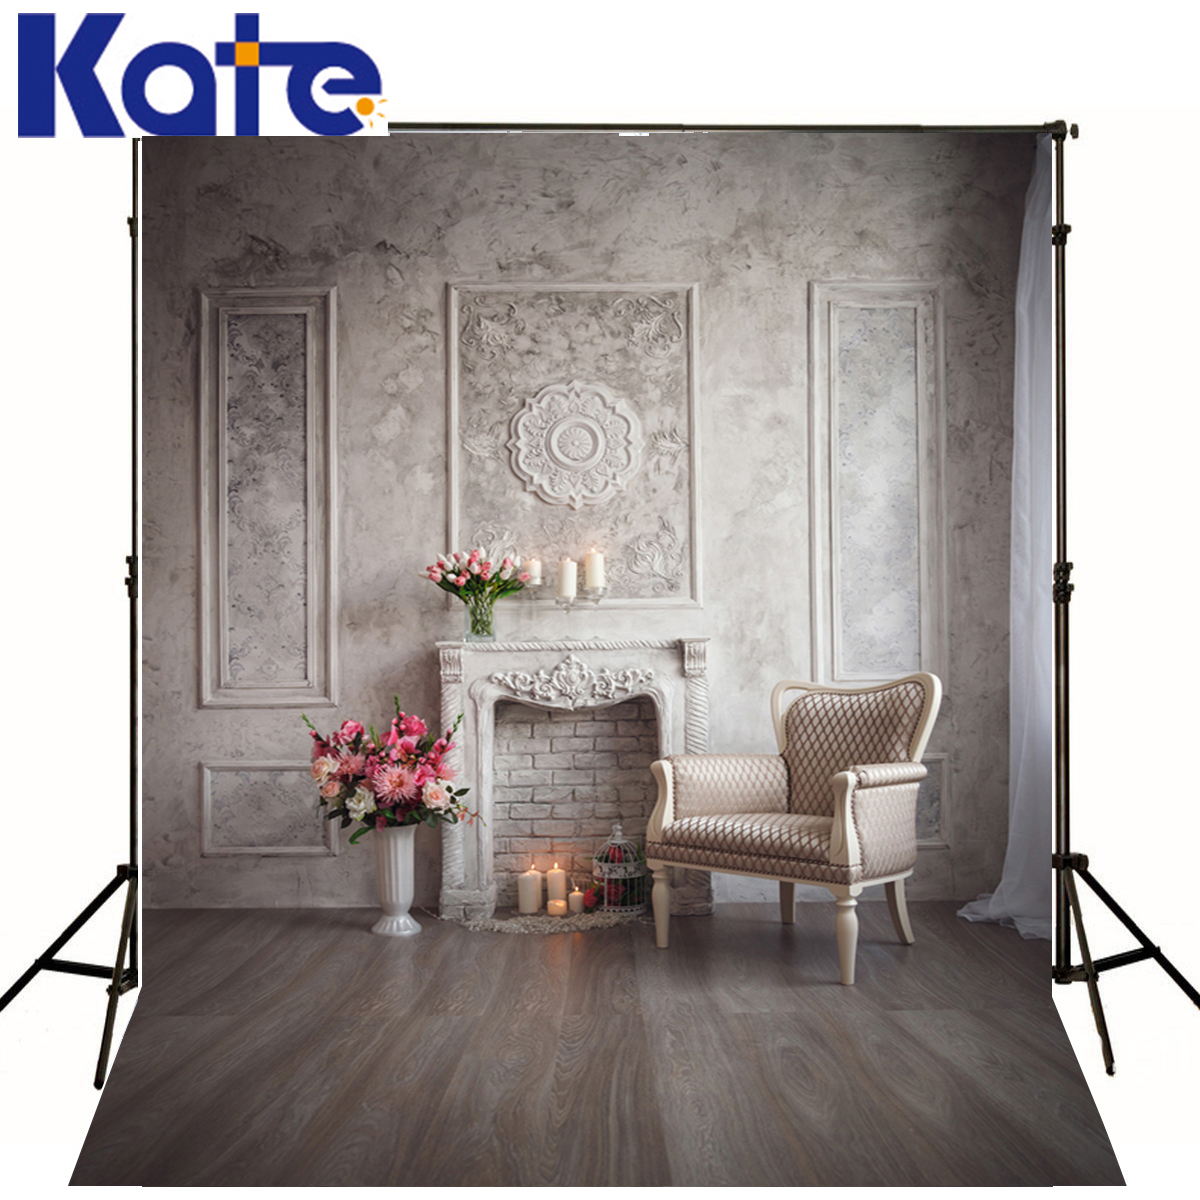 KATE Family Background photo White Wall Chair Children Photography Backdrops Pink Flowers Window Background Child Photo Studio family photo